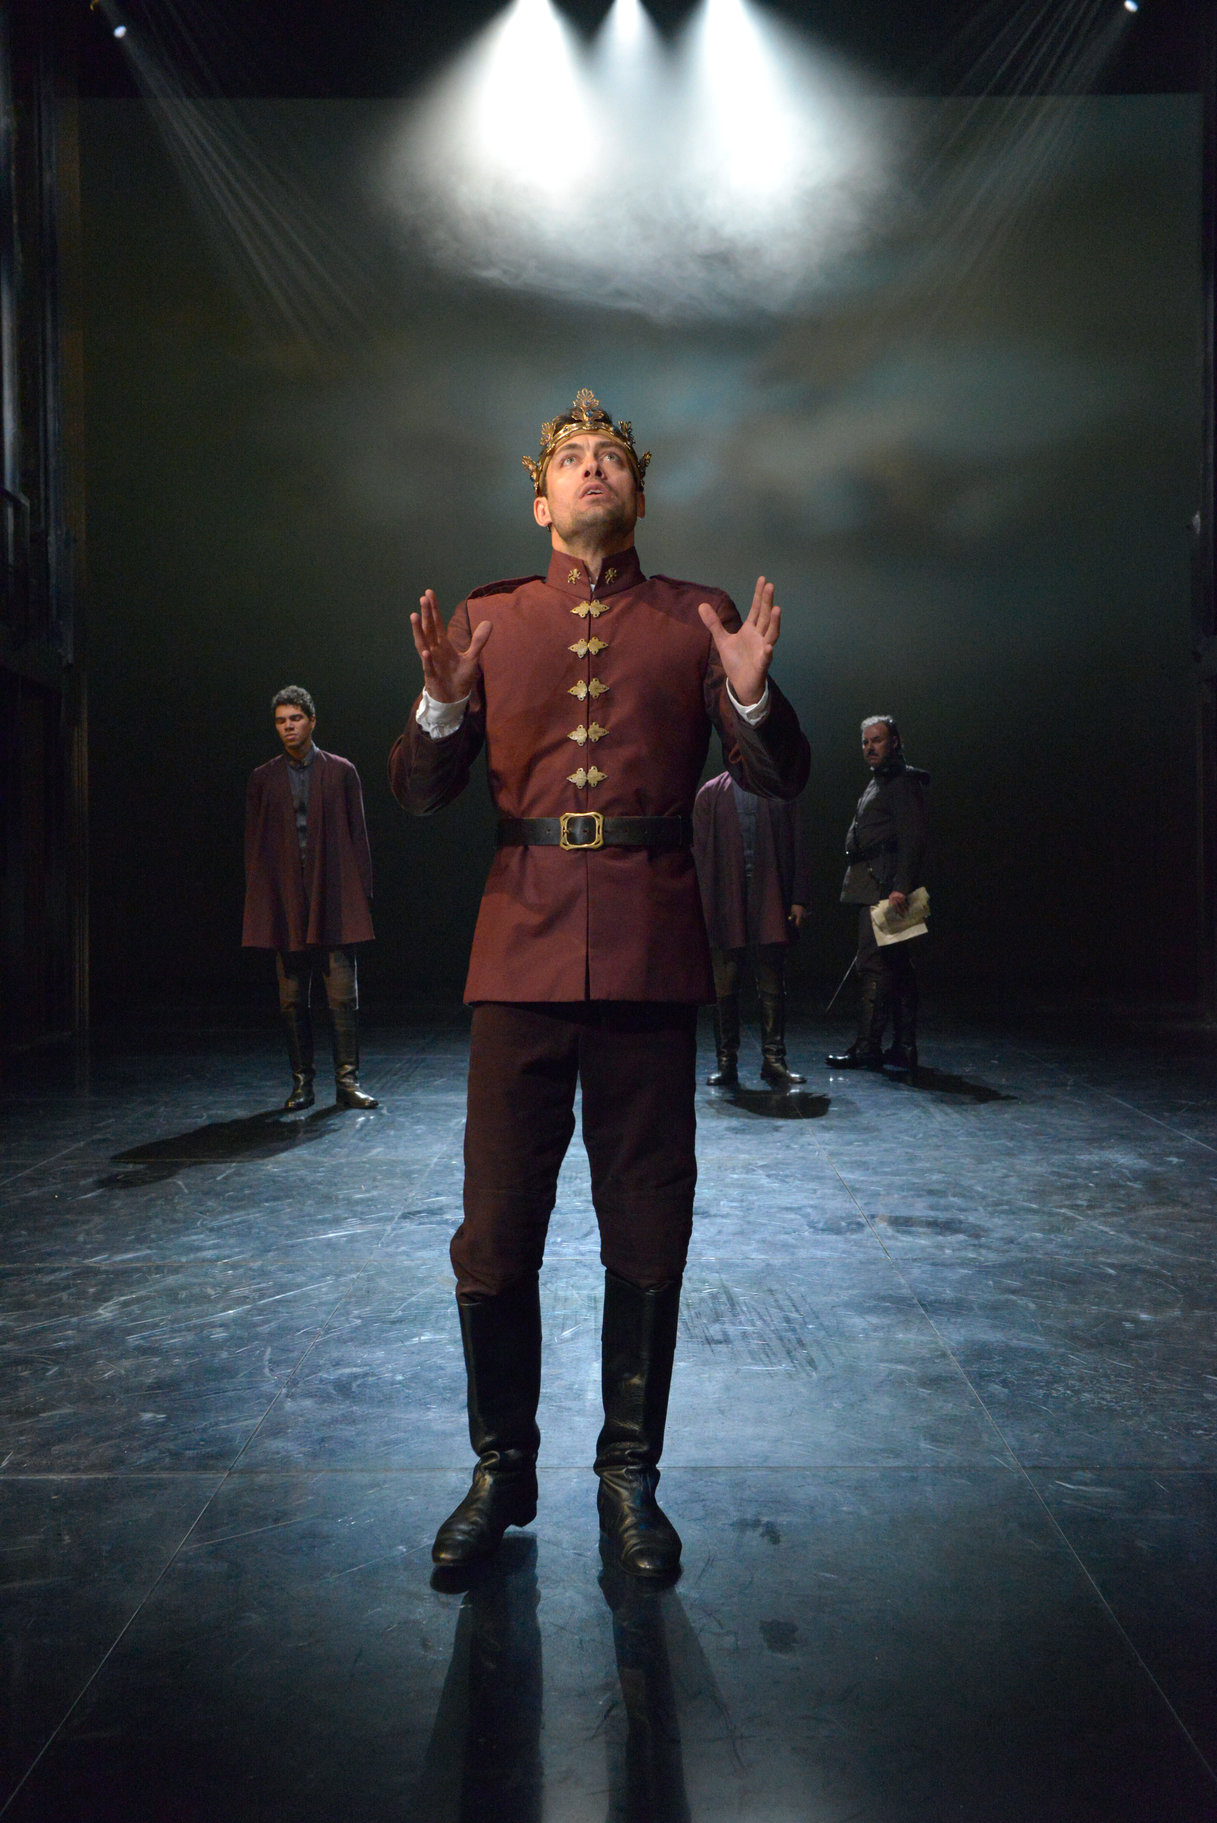 Henry V stands wearing his crown and raising his hands in the 2015 production of Henry V